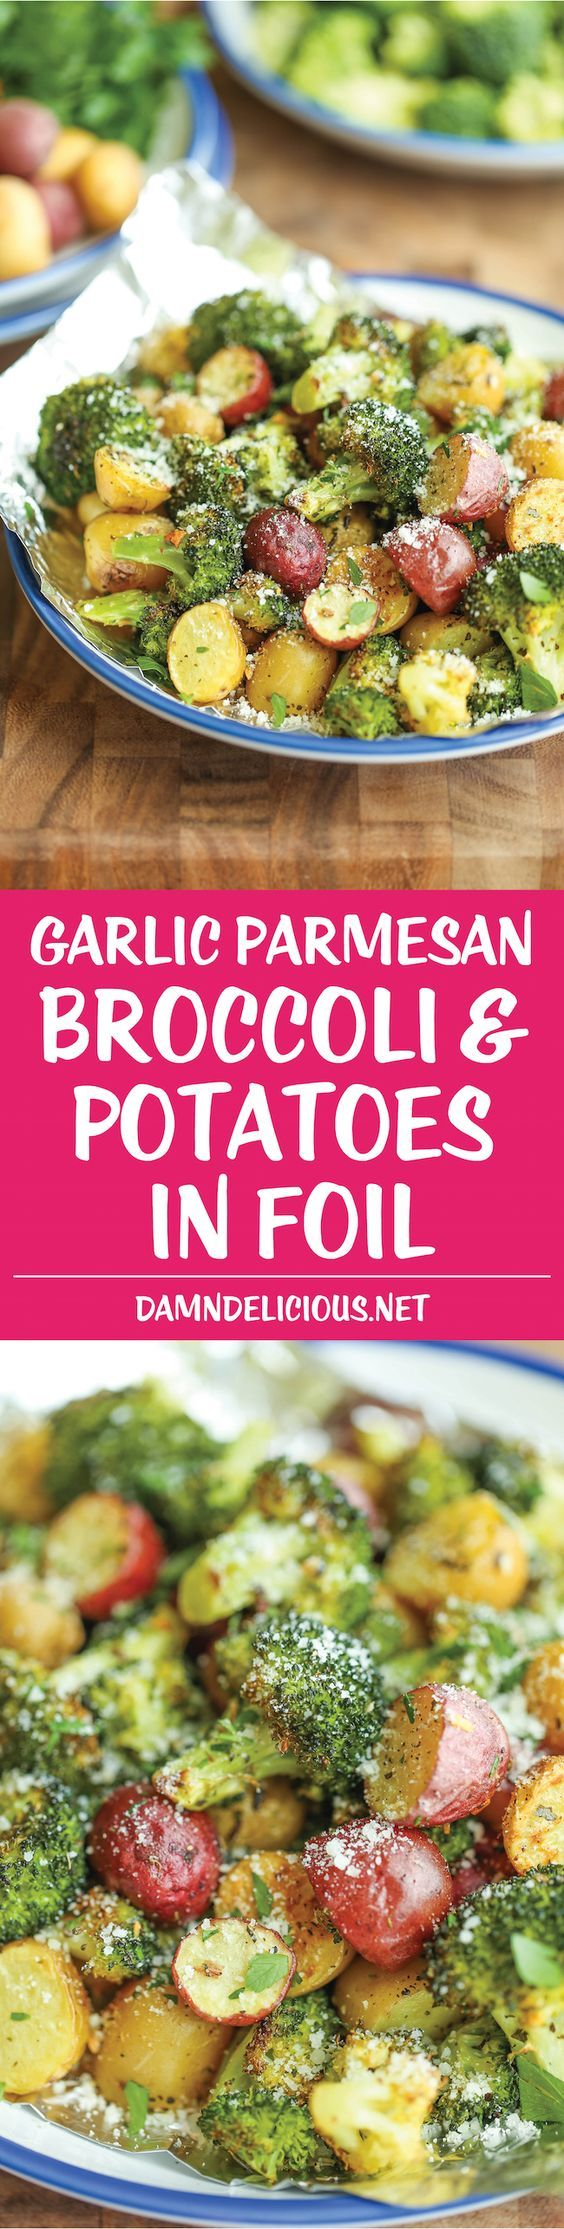 Garlic Parmesan Broccoli and Potatoes in Foil - The easiest flavor-packed side dish EVER! Wrap everything in foil toss in your seasonings and you're set!